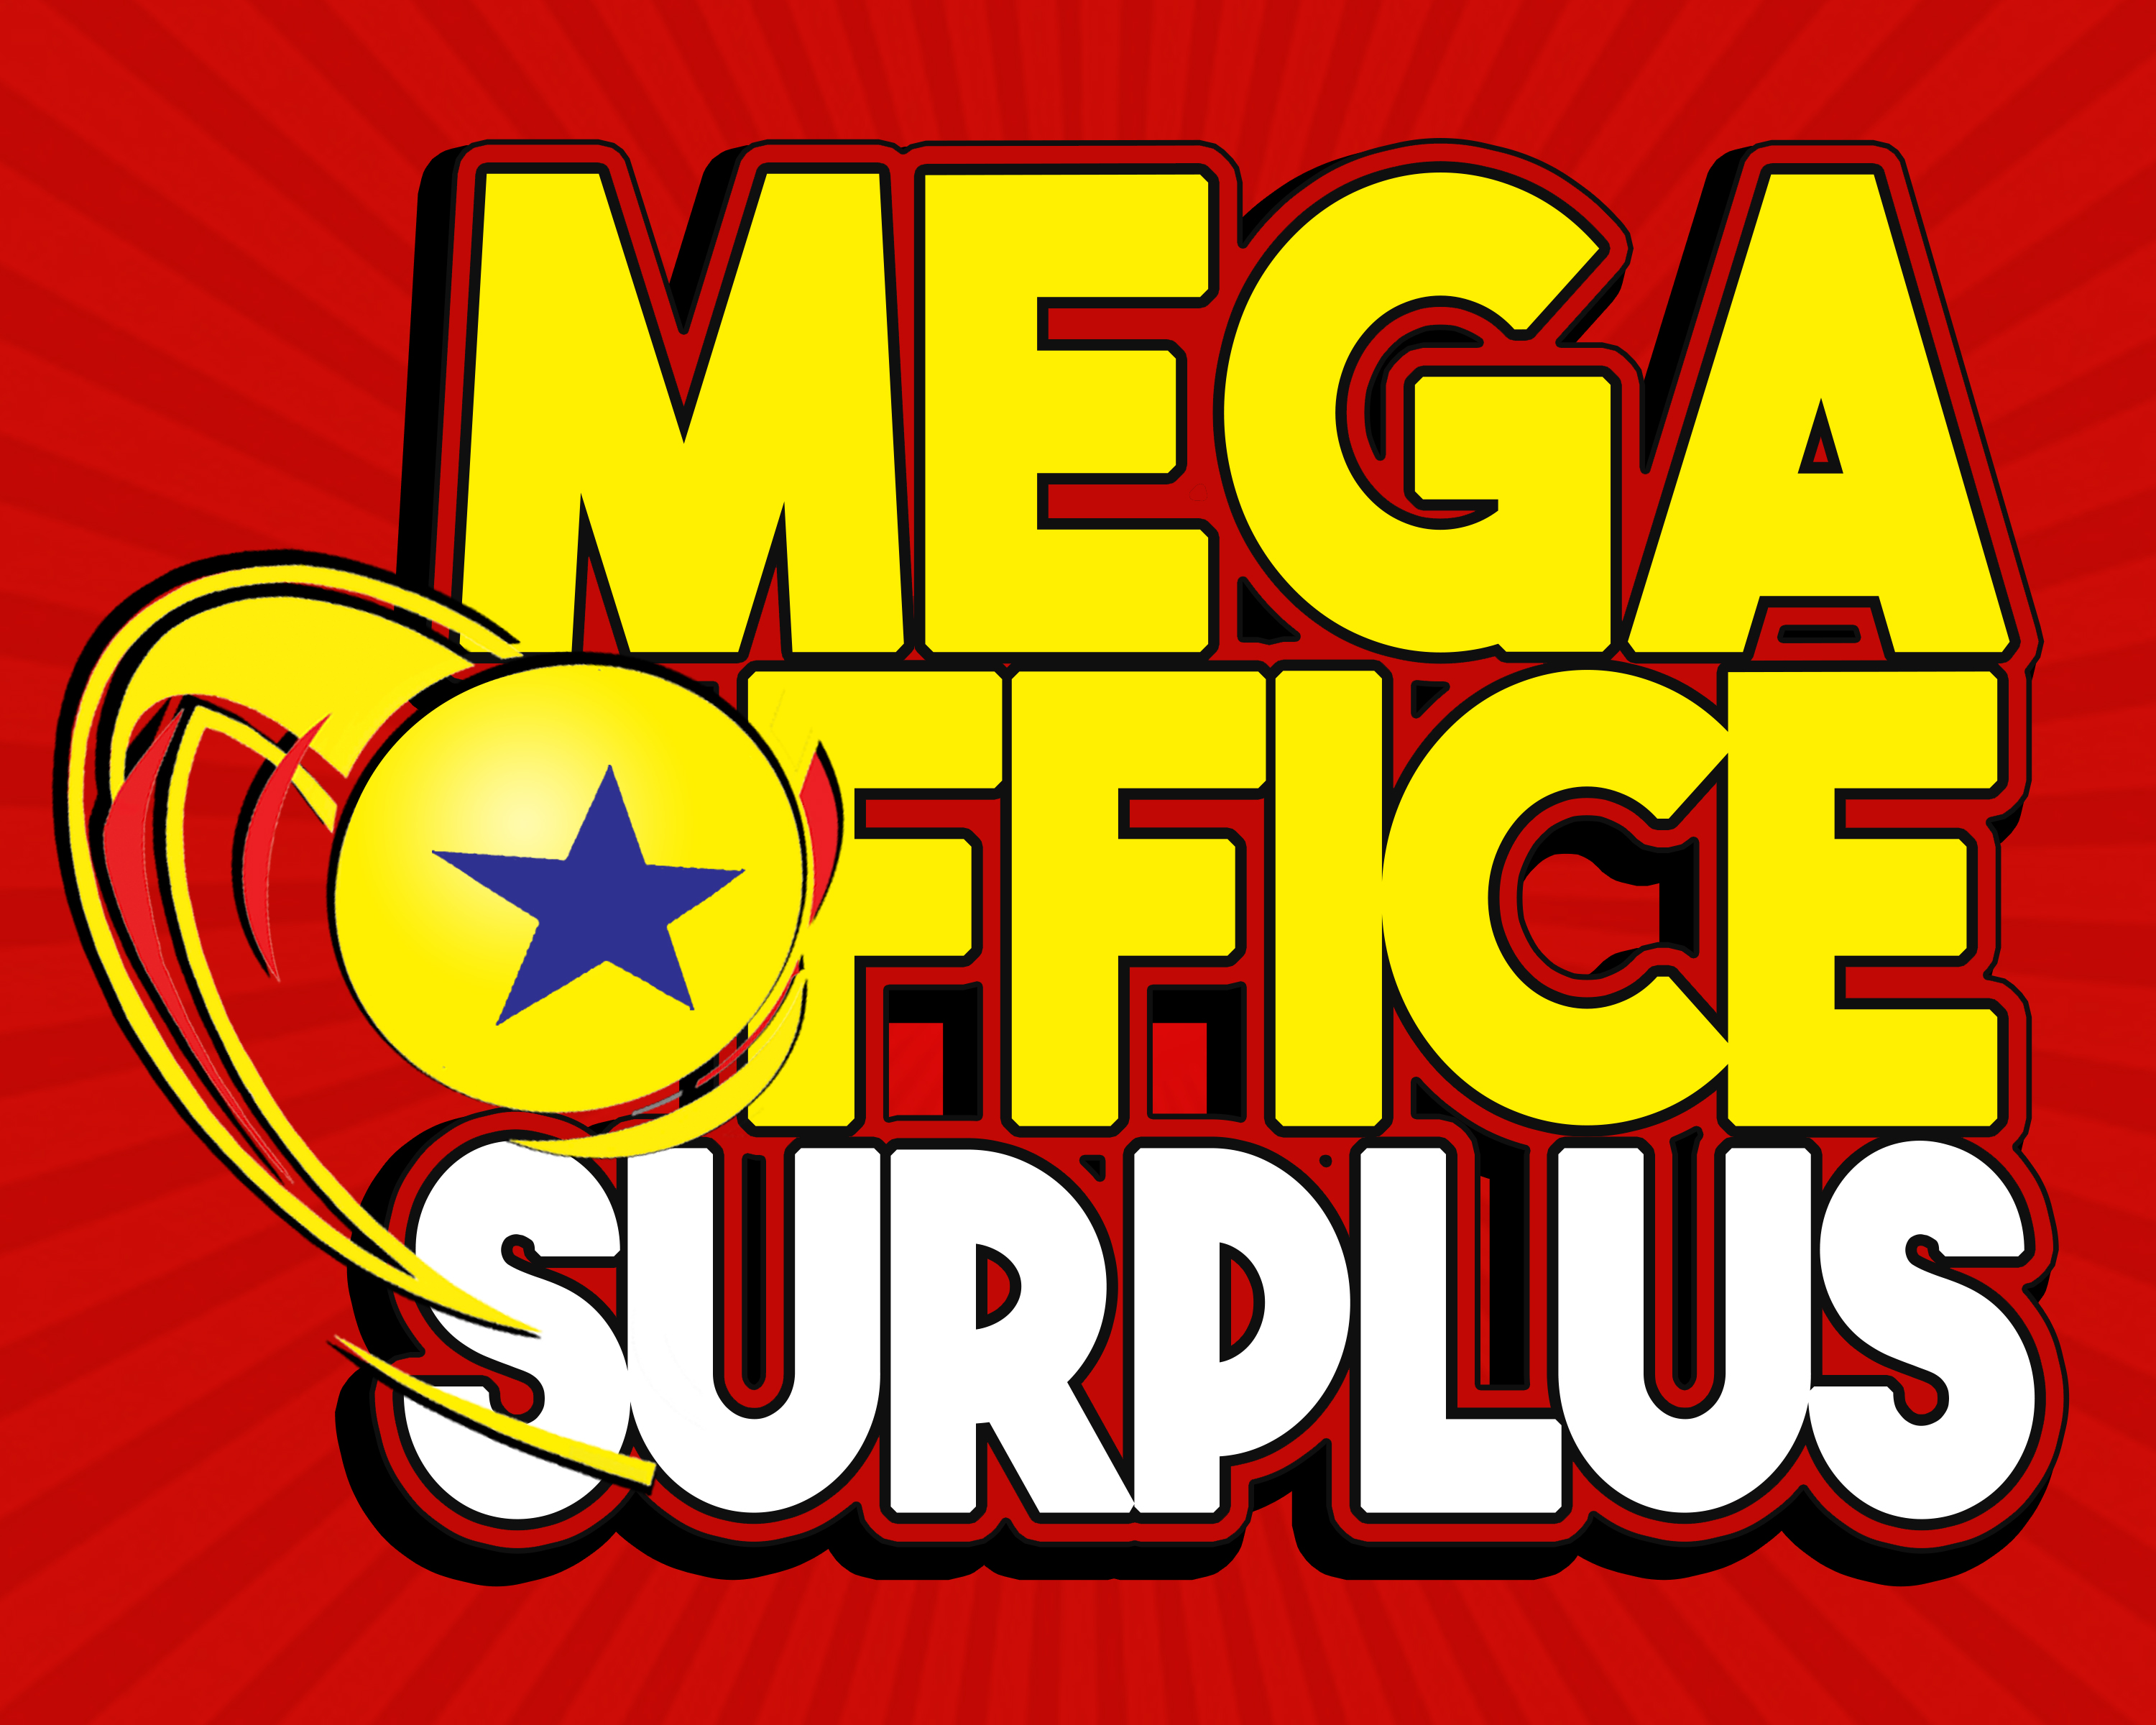 Megaoffice Surplus Furniture Shop Ph